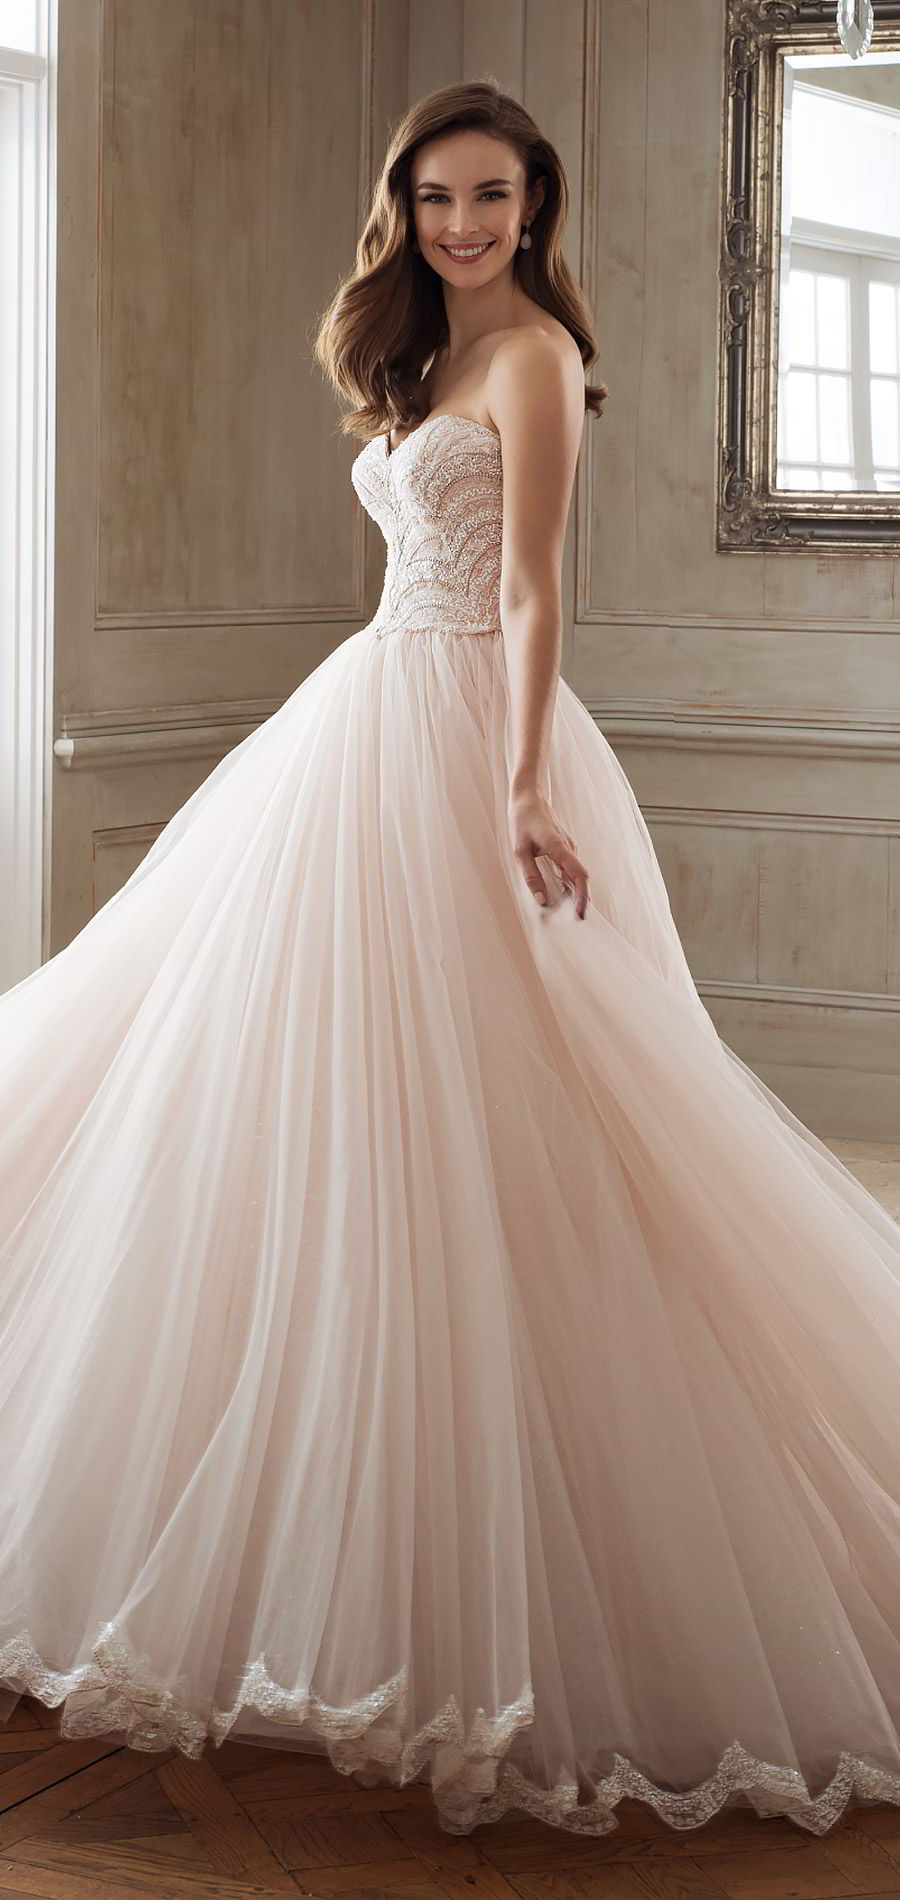 Yesbabyonline Offers Affordable Gorgeous Wedding Dresses Following The 2019 Fashion Trends Visit And Now